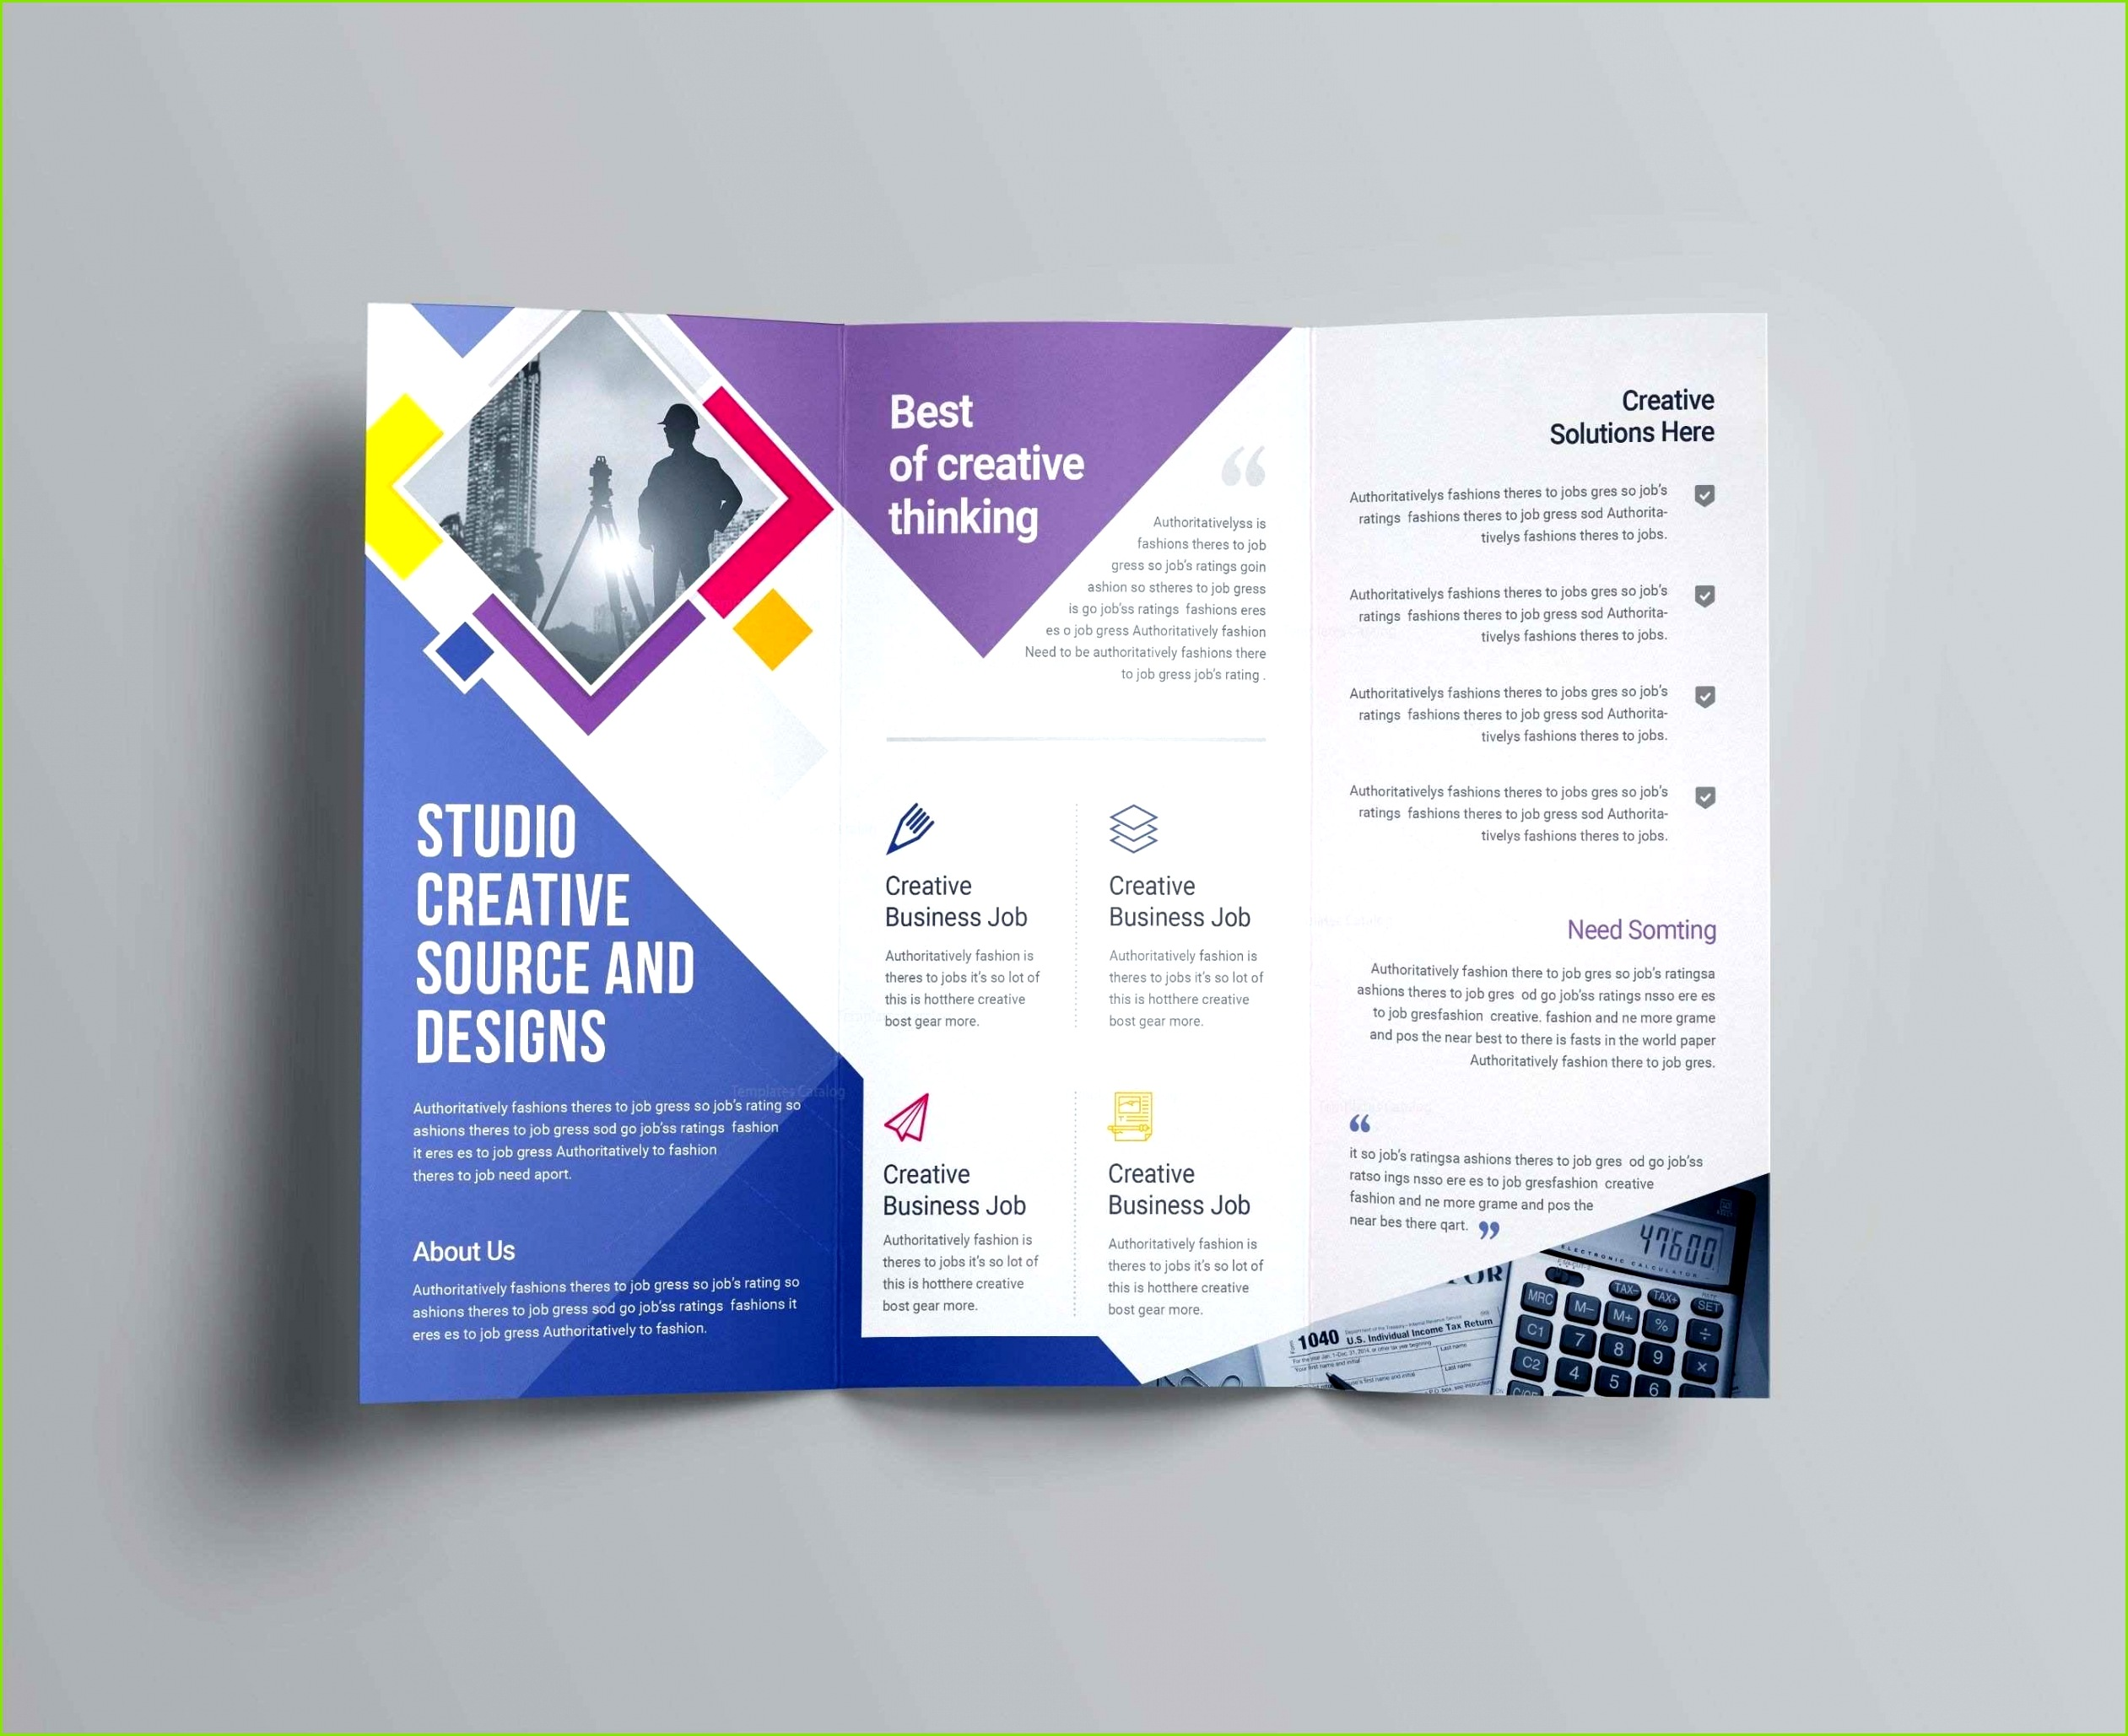 Keynote Templates Free New ¢Ëœ† Microsoft Powerpoint Download for Mac Free Awesome Luxury Gallery